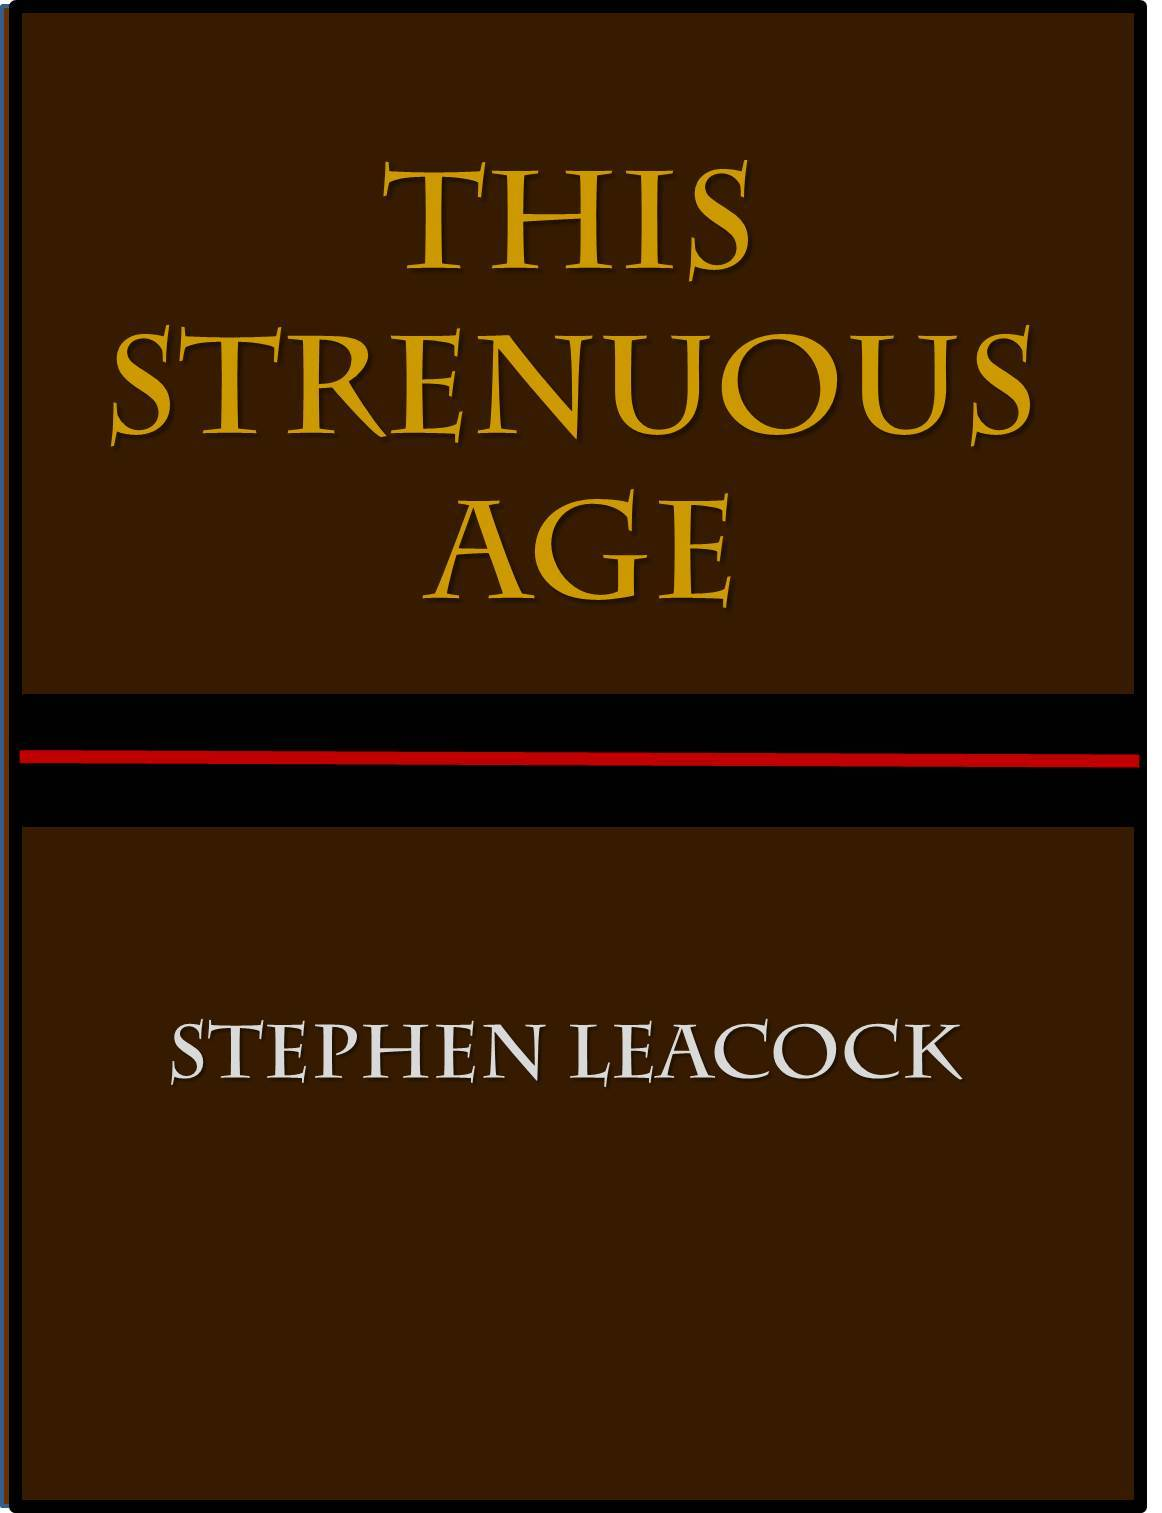 This Strenuous Age Stephen Leacock